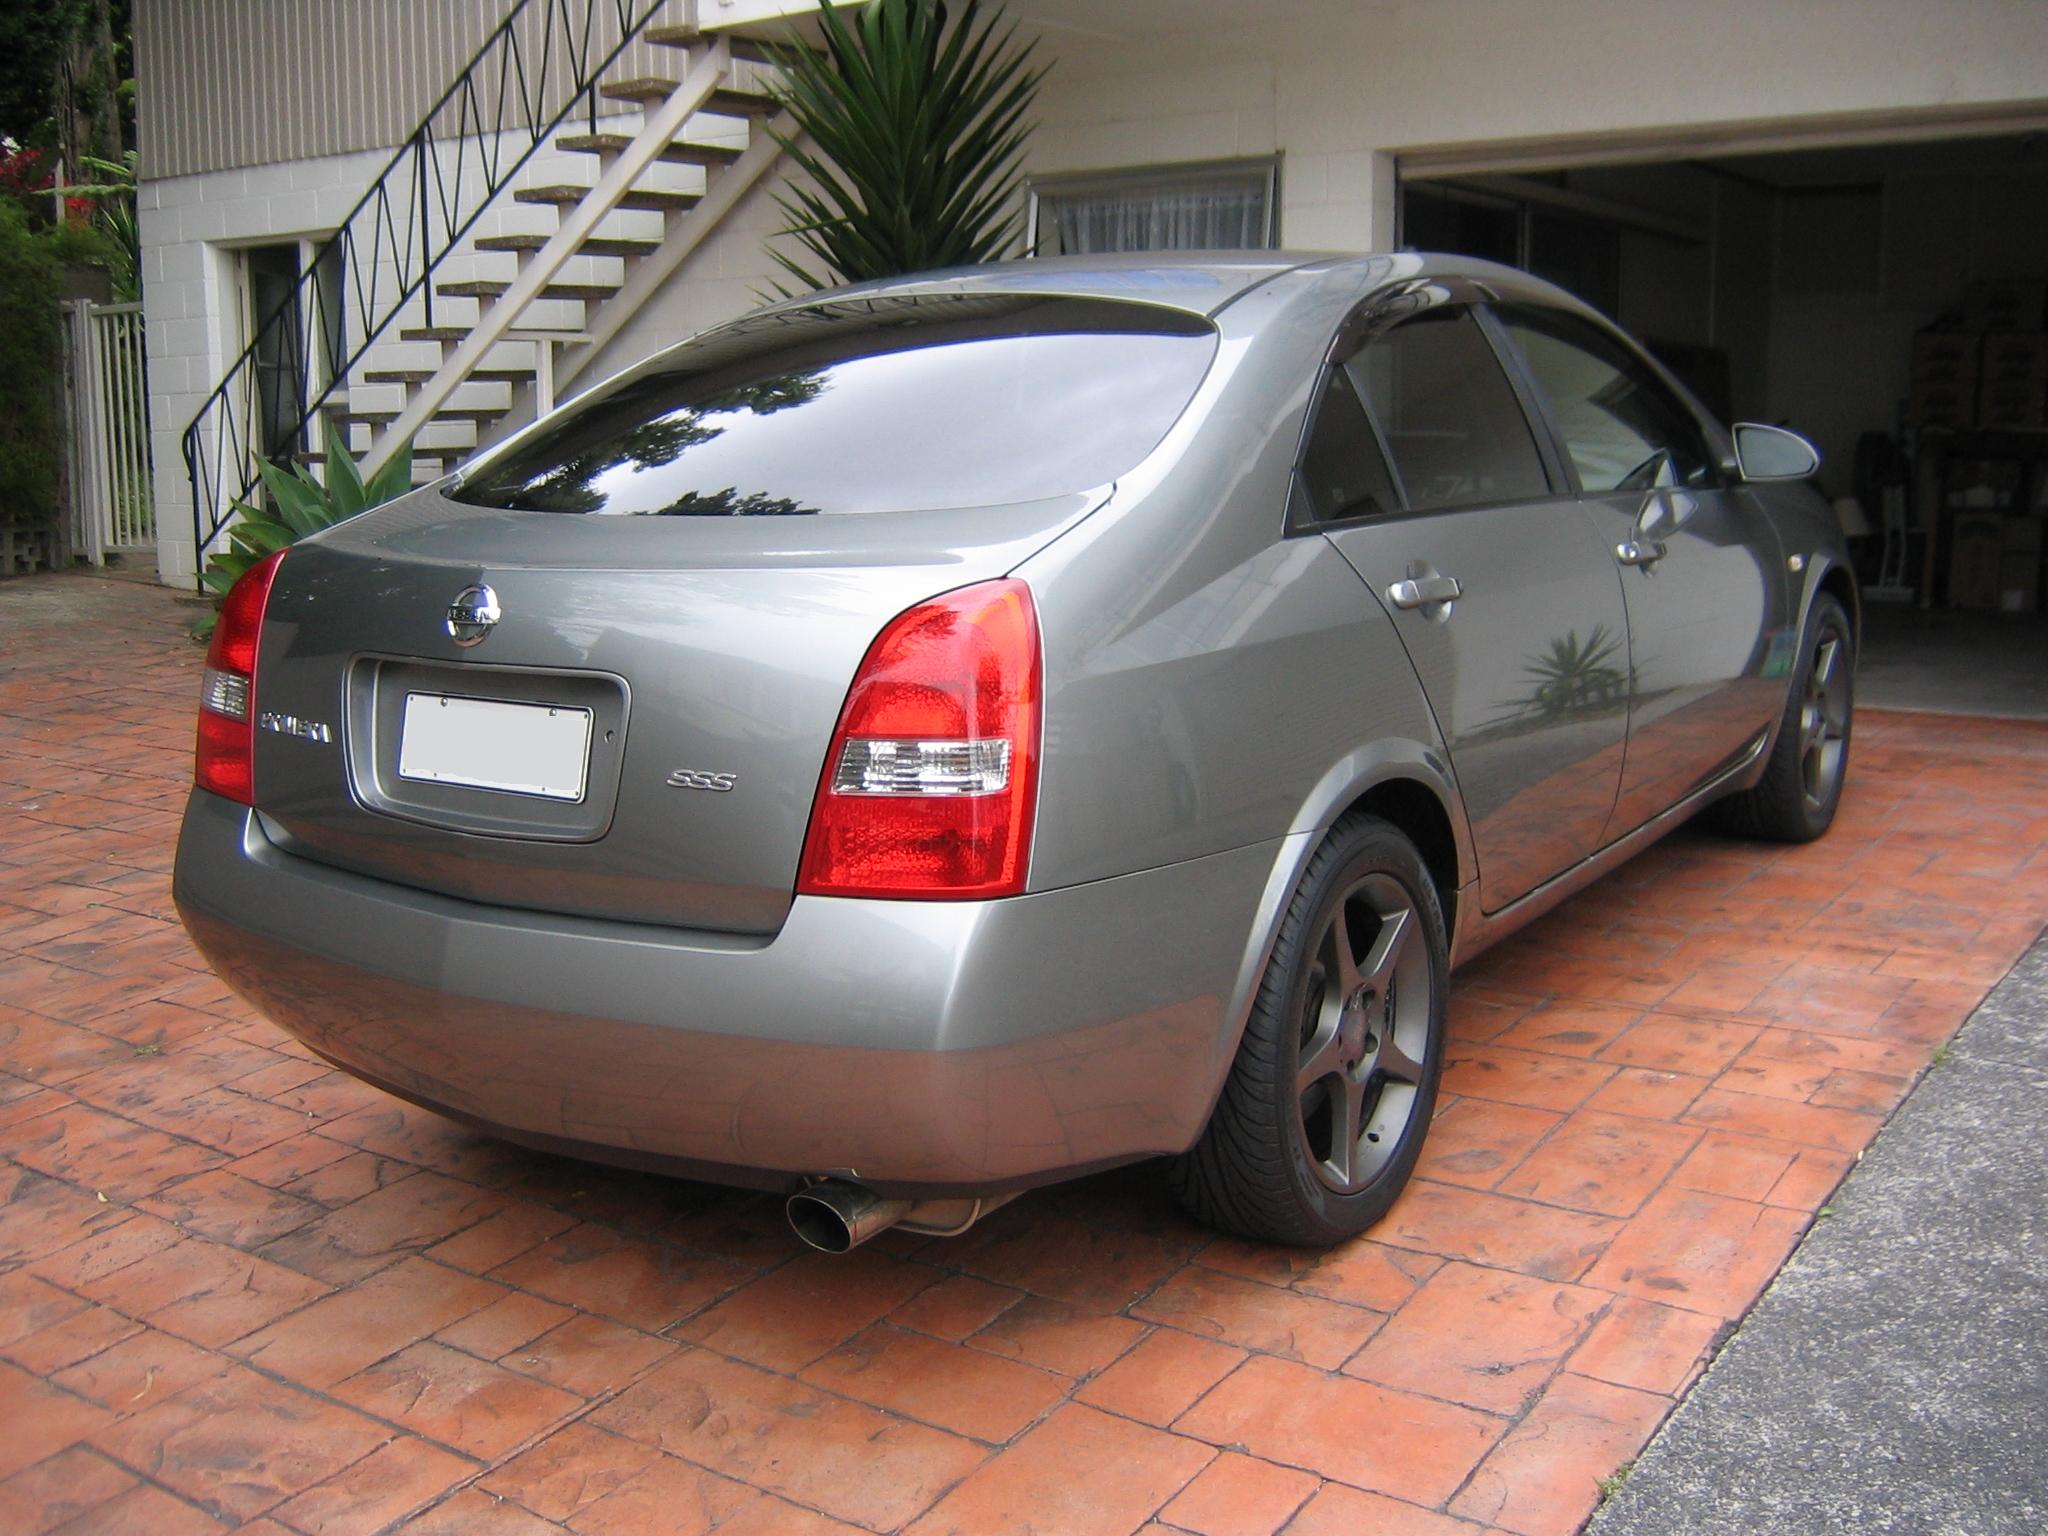 Nissan Primera 2006 Review Amazing Pictures And Images